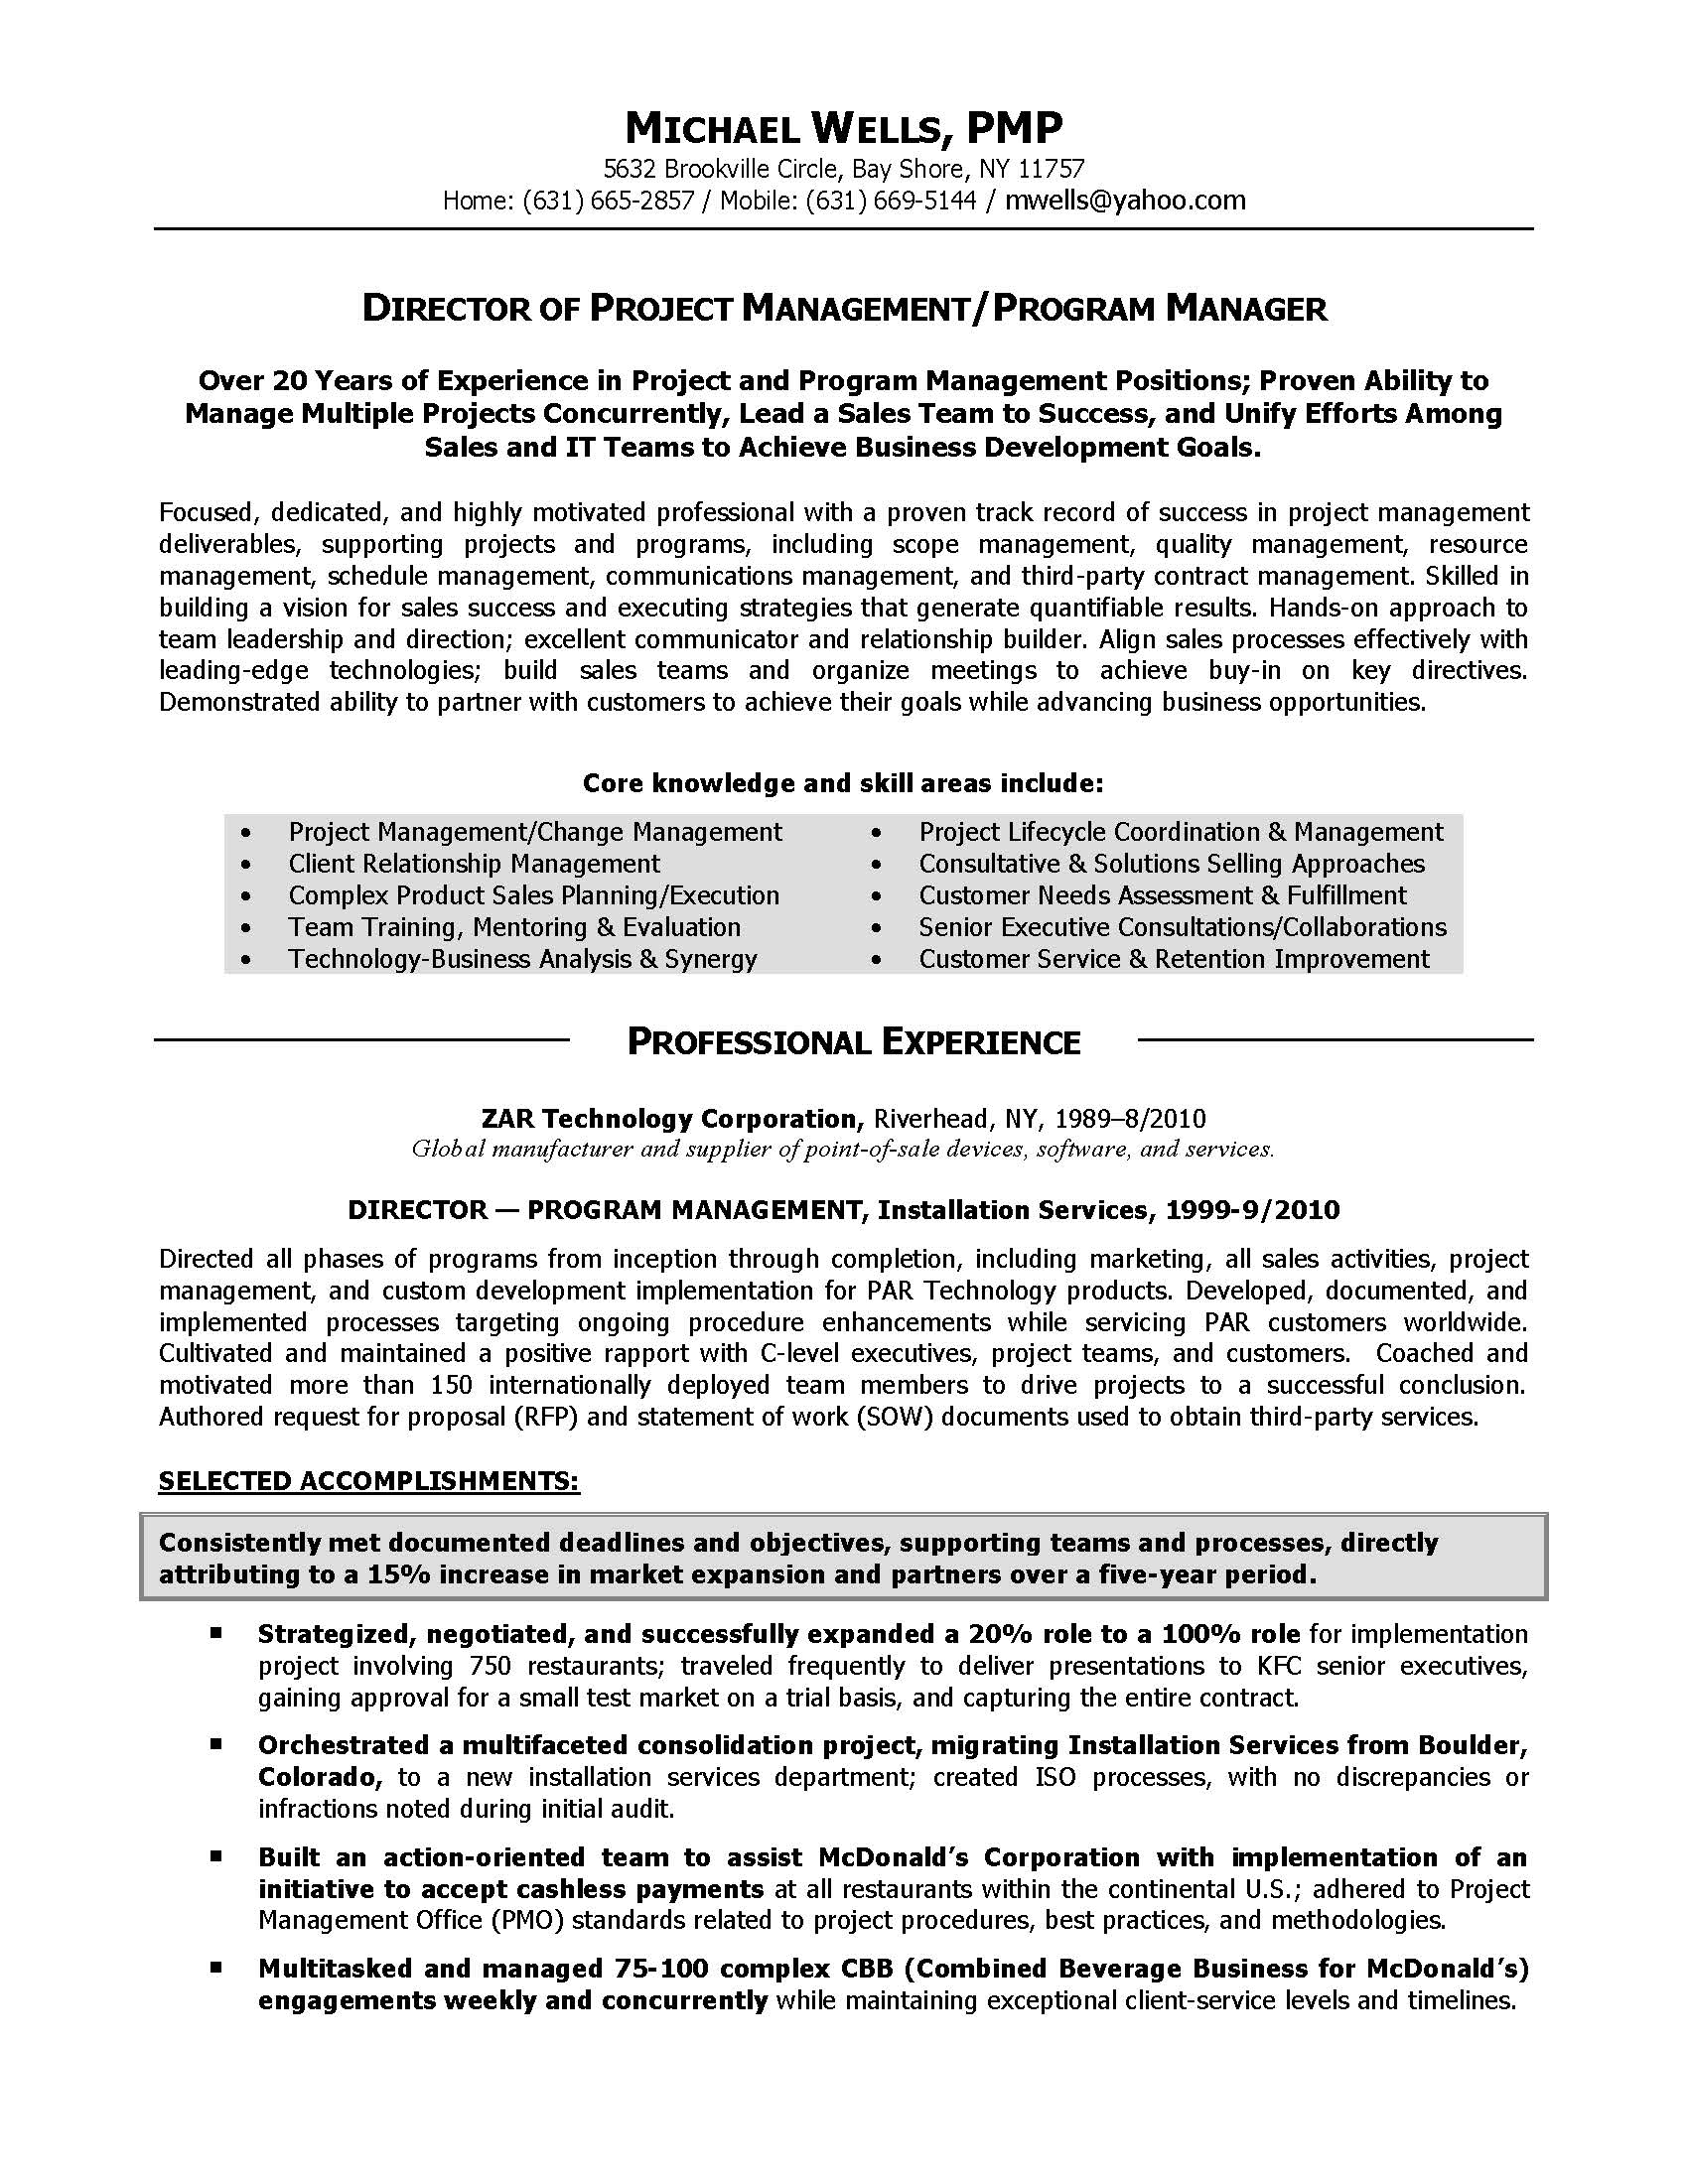 project management director resume sample provided by elite resume writing services - Sample Project Manager Resumes